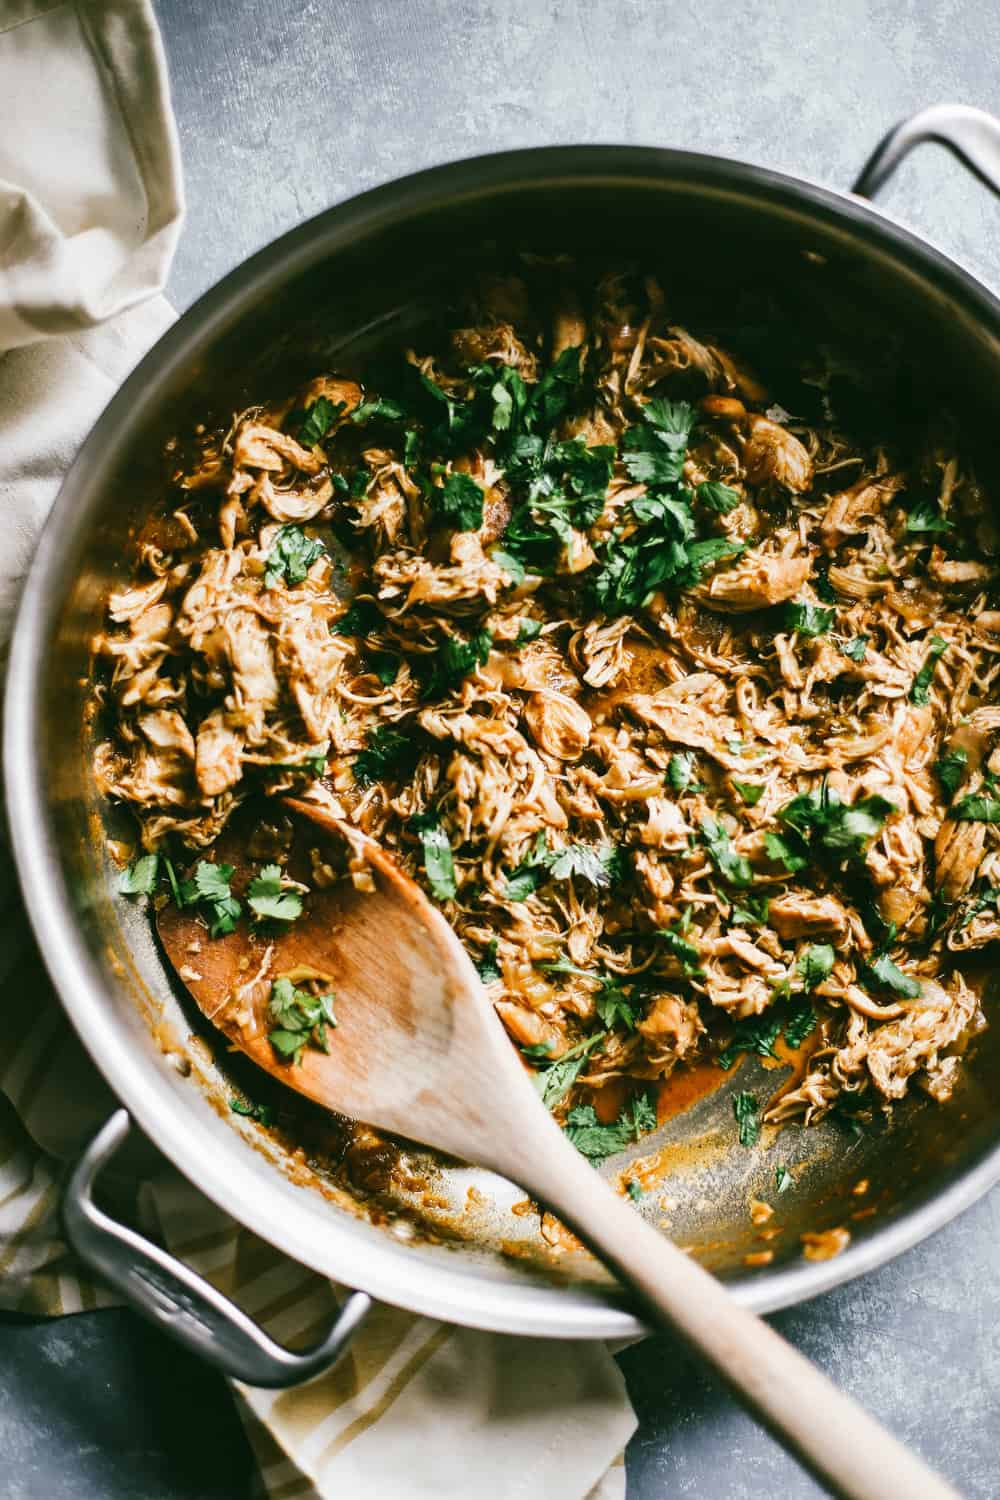 A pan with shredded chicken and cilantro being stirred with a wooden spoon.